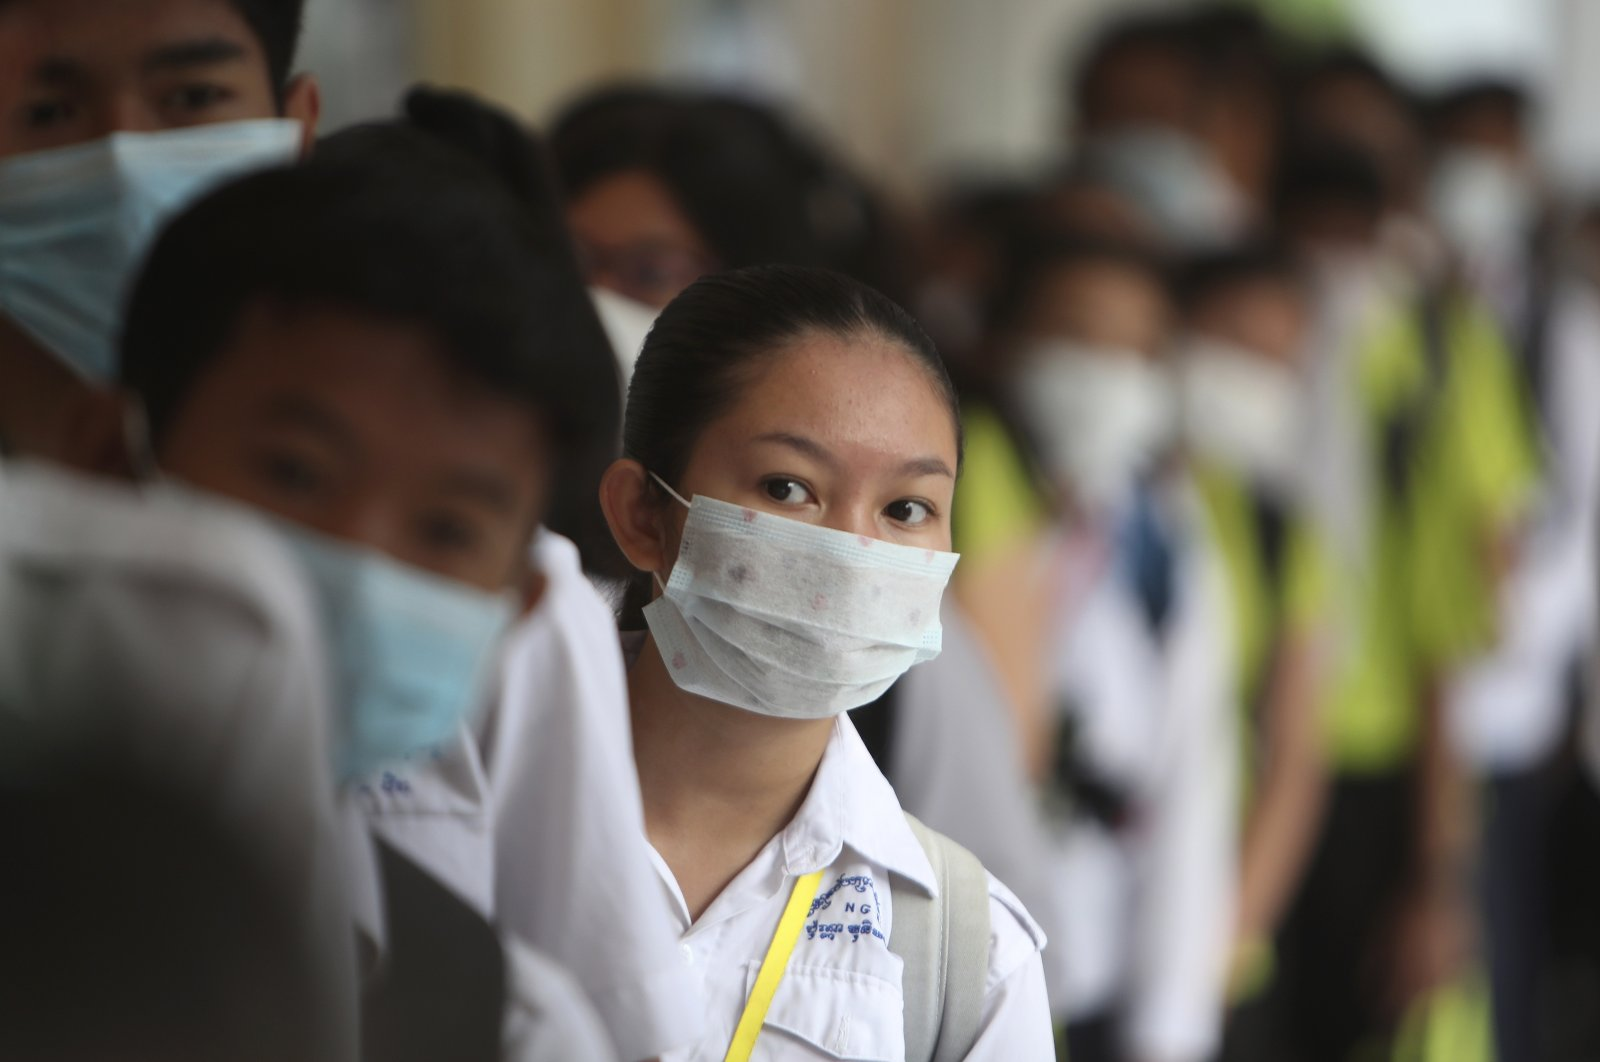 Students line up to sanitize their hands to avoid contact with the coronavirus before their morning class at a high school in Phnom Penh, Cambodia, Jan. 28, 2020. (AP Photo)